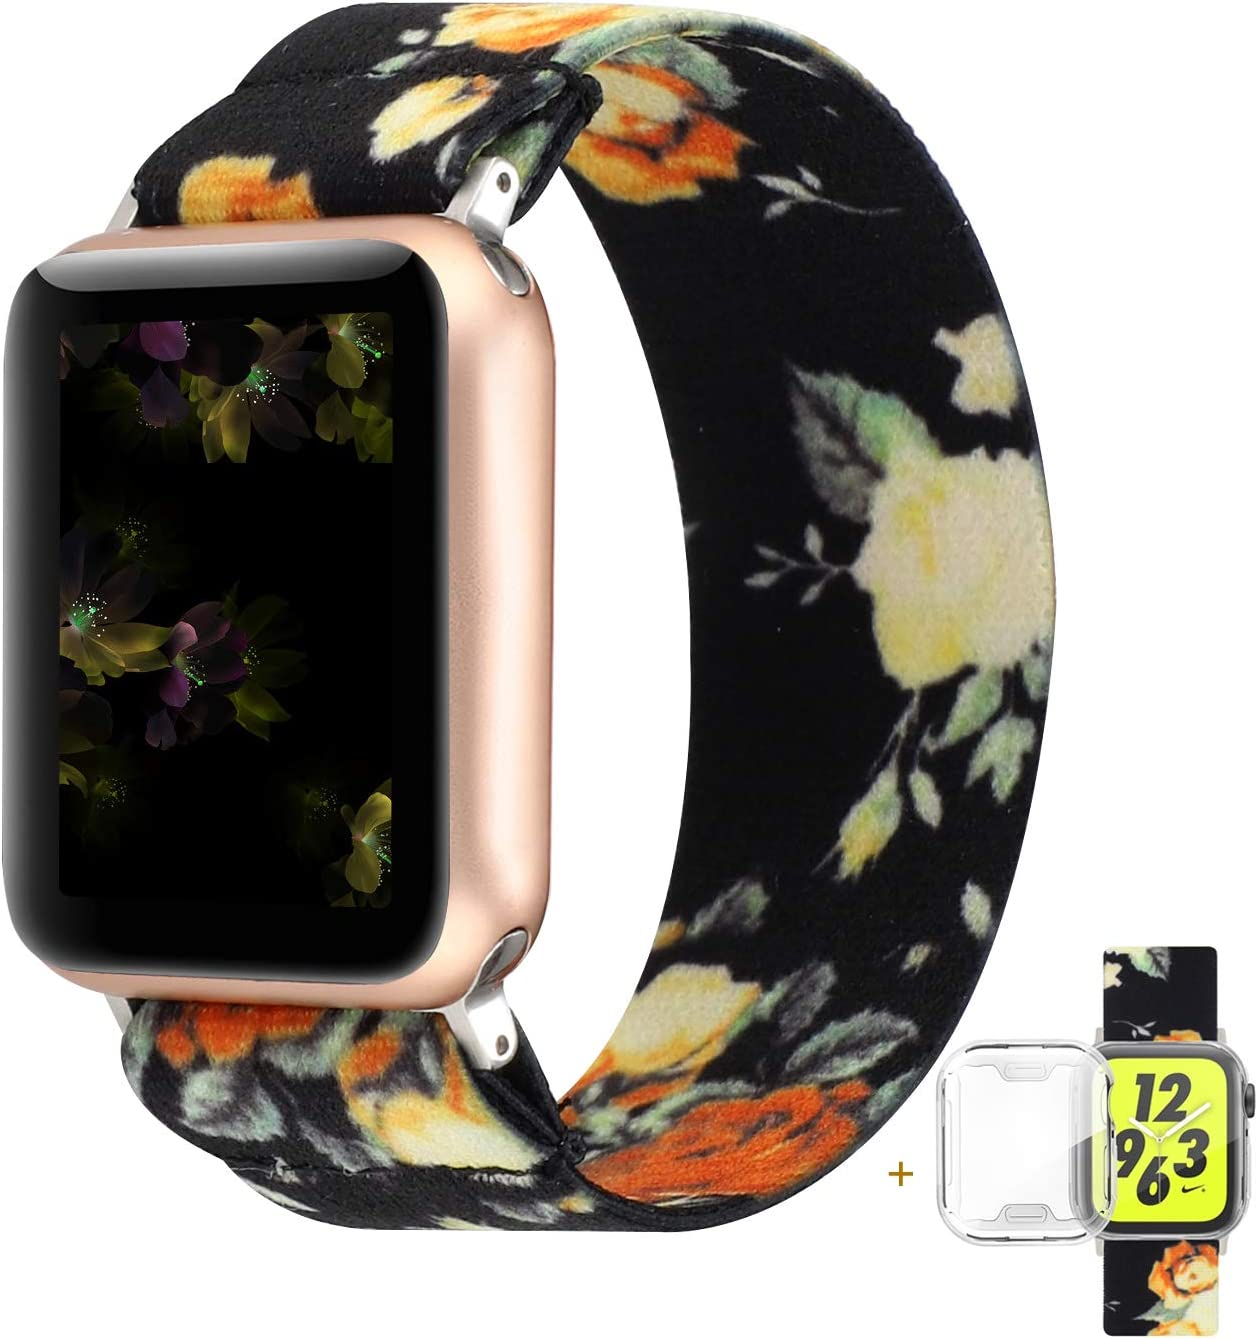 YOSWAN Compatible with Apple Watch Band 42mm 44mm Elastic Soft Nylon Solo Loop Starp Scrunchy Wristband, Women Men Cute Comfy Athletic Stretchy Bracelet Replacement Loop for iWatch SE Series 6 5 4 3 2 1 (Black Peony, 42mm/44mm L Size)